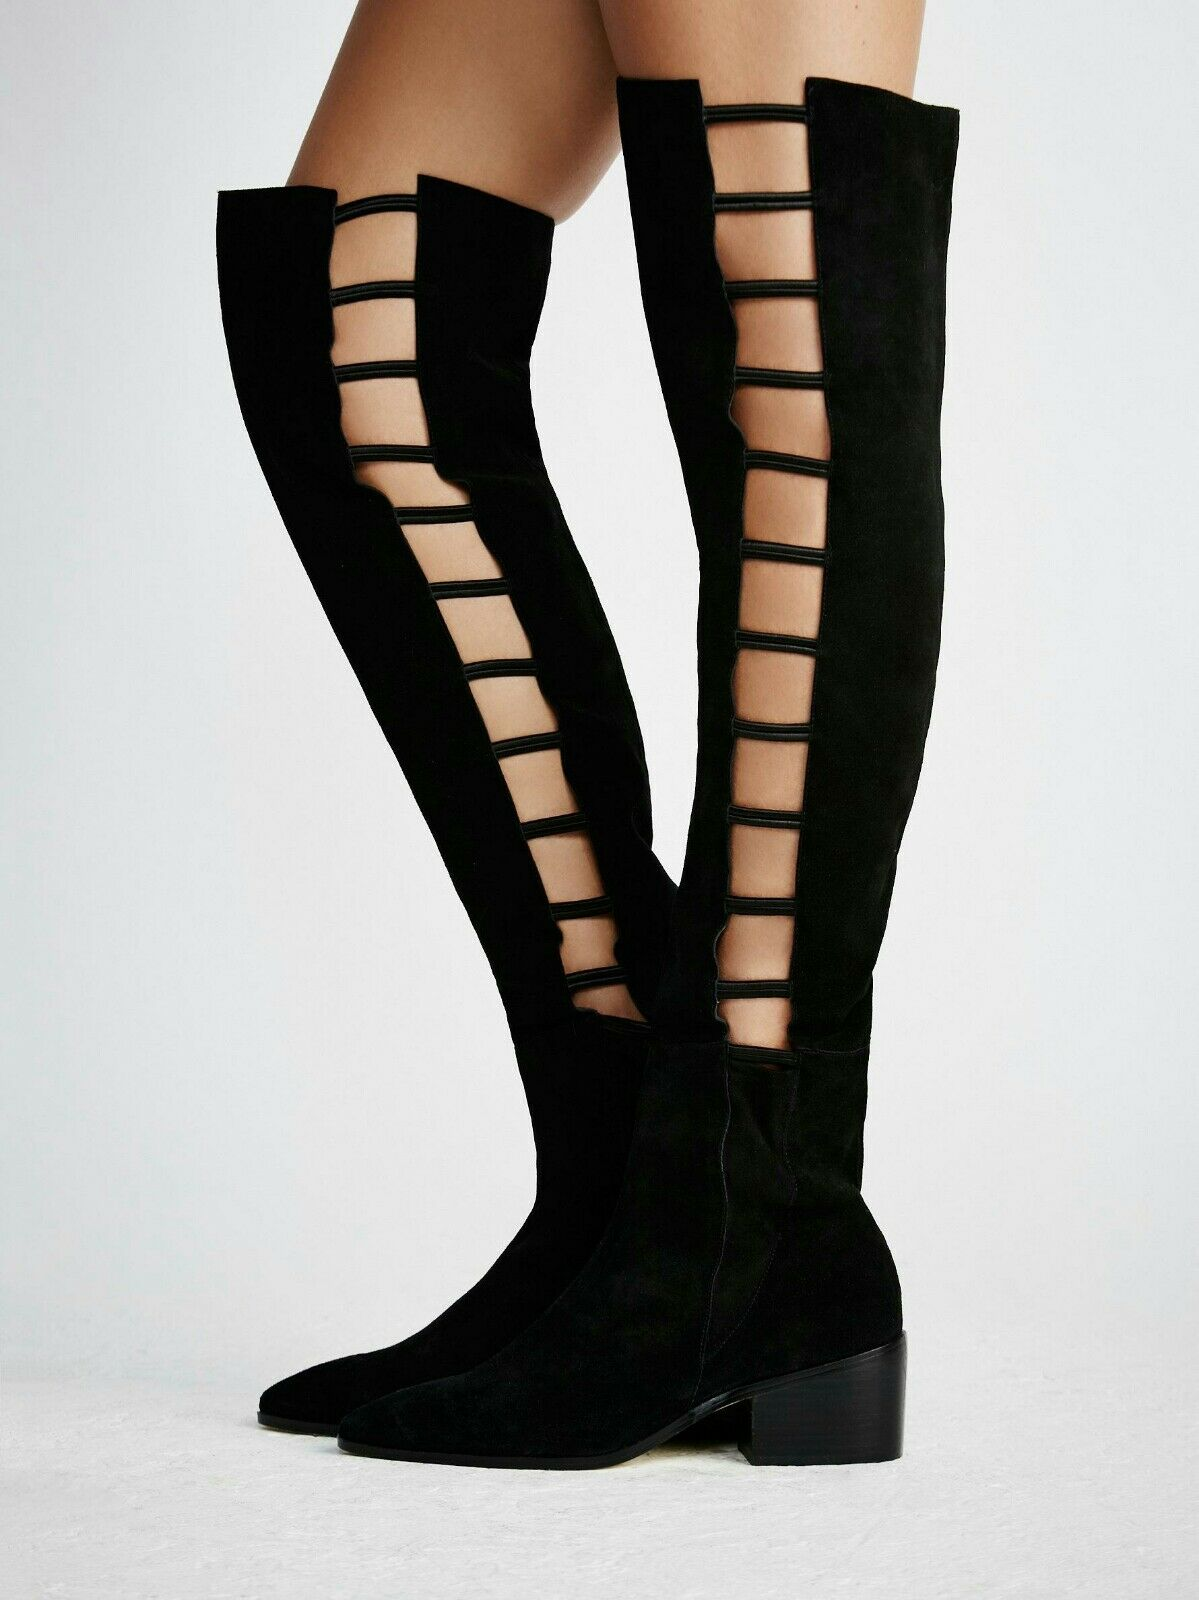 FREE PEOPLE Ladder Boot Over the Knee Cutout Black Suede by Farylrobin Sz 8 $248